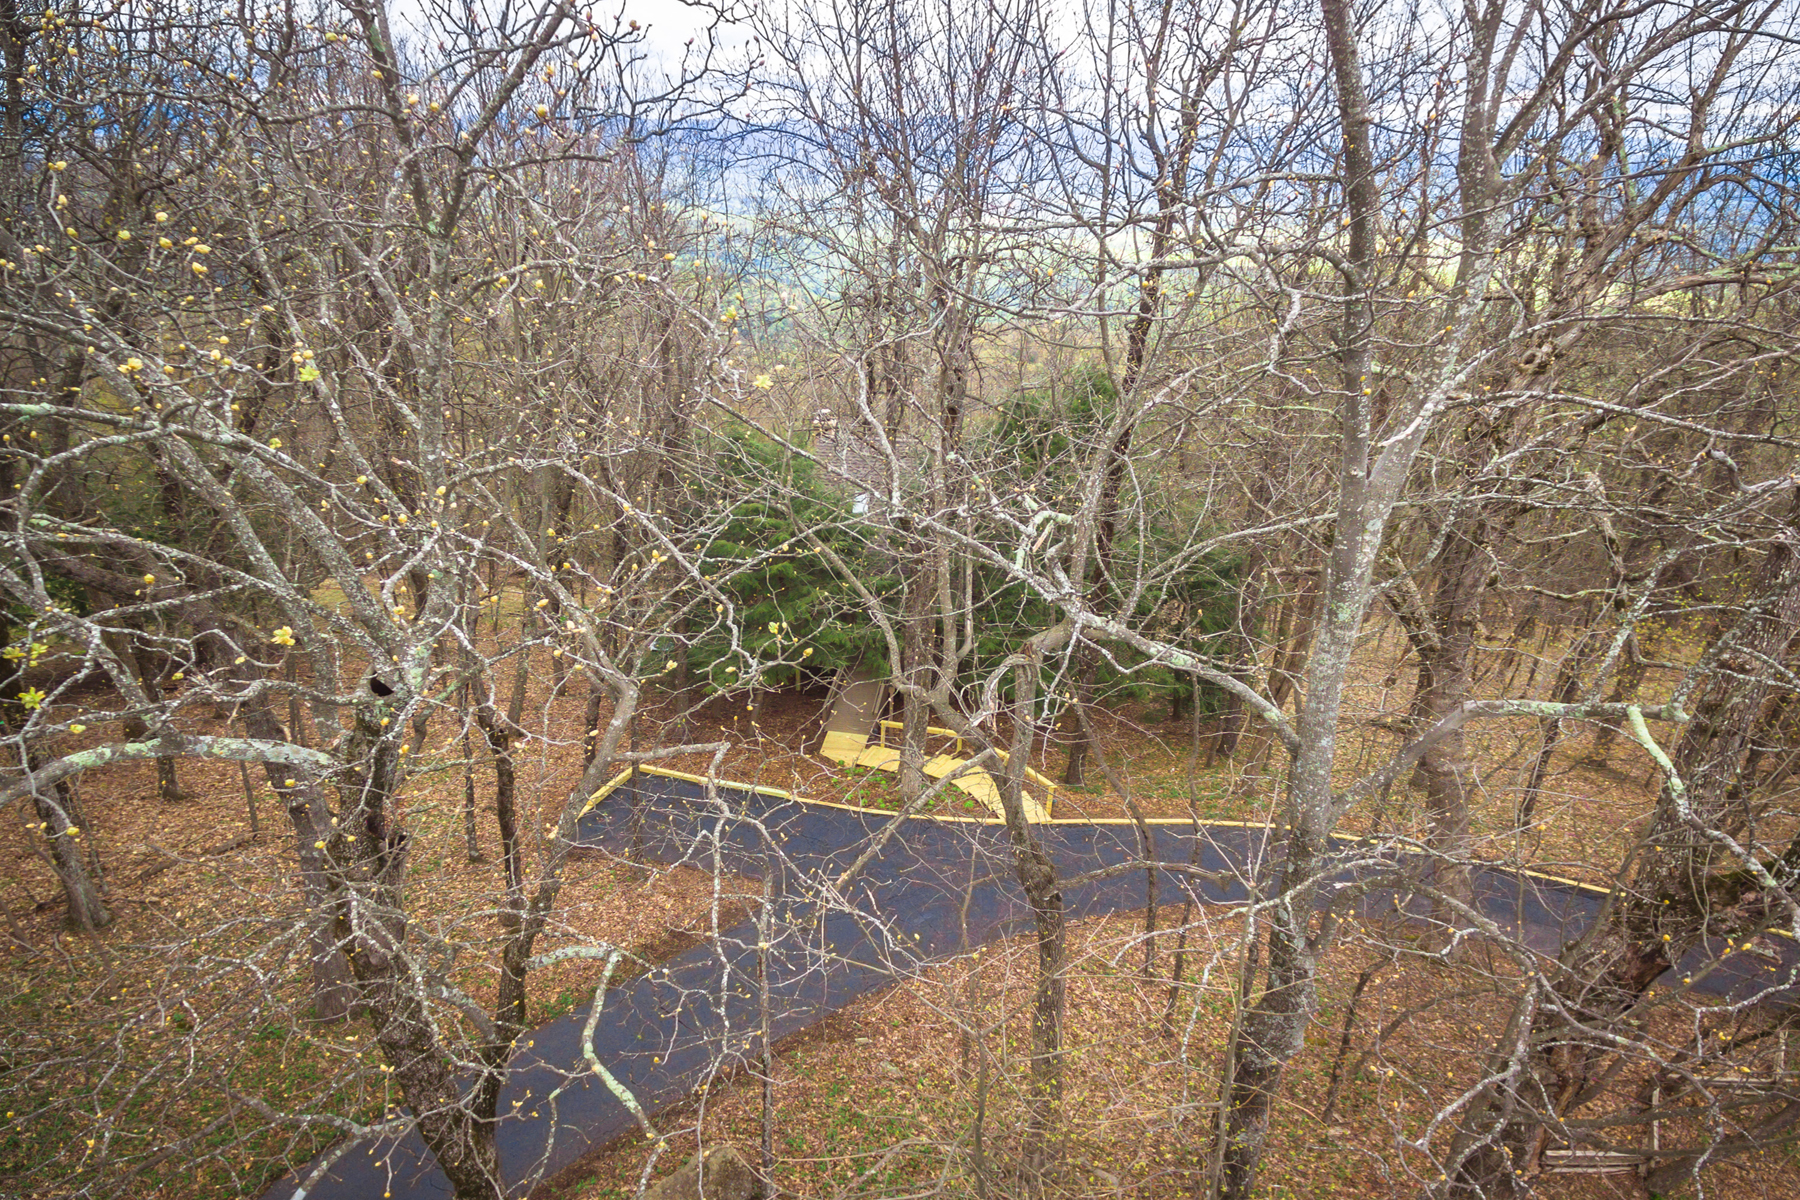 Additional photo for property listing at Mountain Top Overlooking a Pond 453 Sanderlin Mountain Drive Big Canoe, Georgia 30143 United States